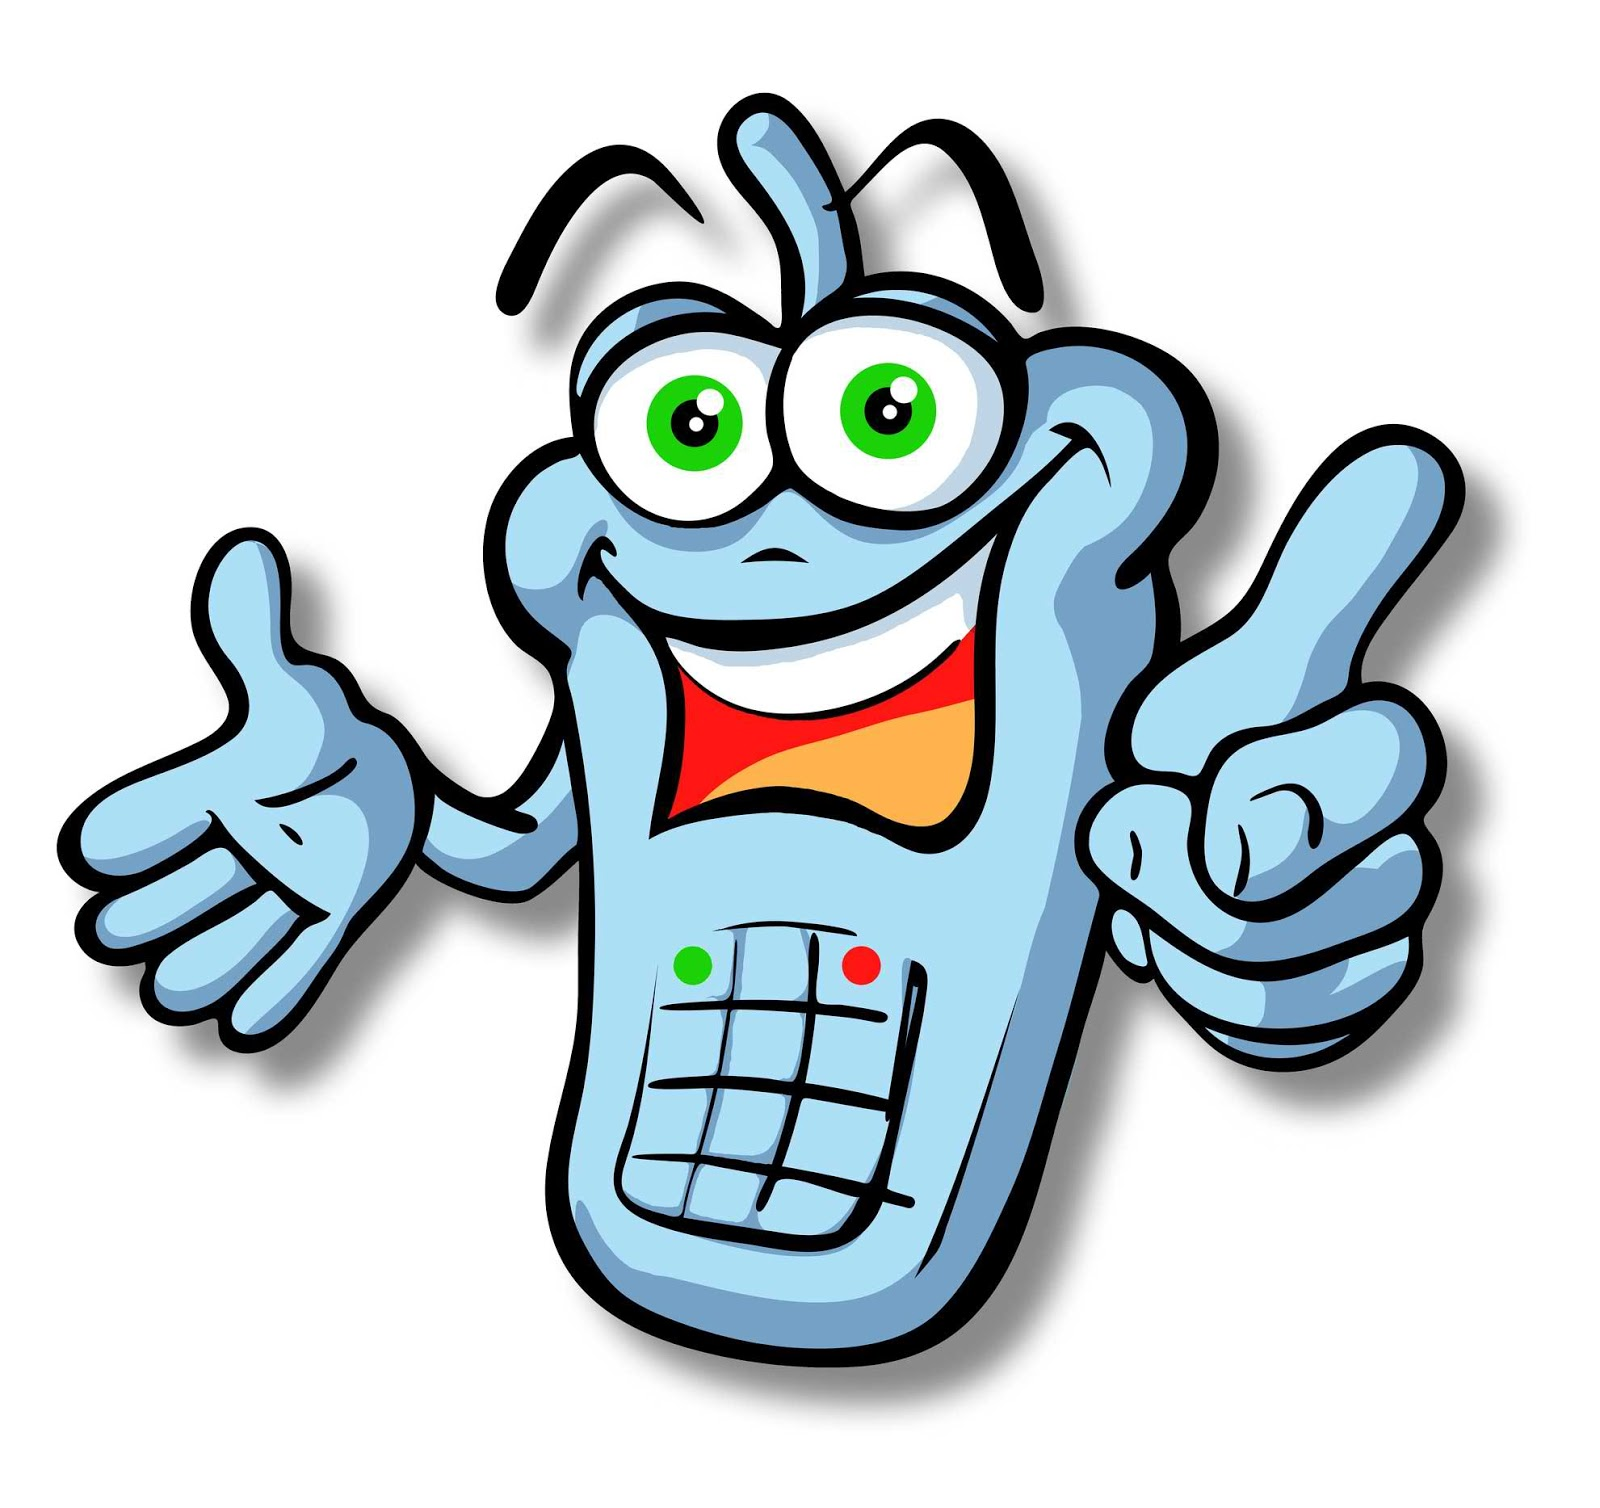 Clipart Phone Images